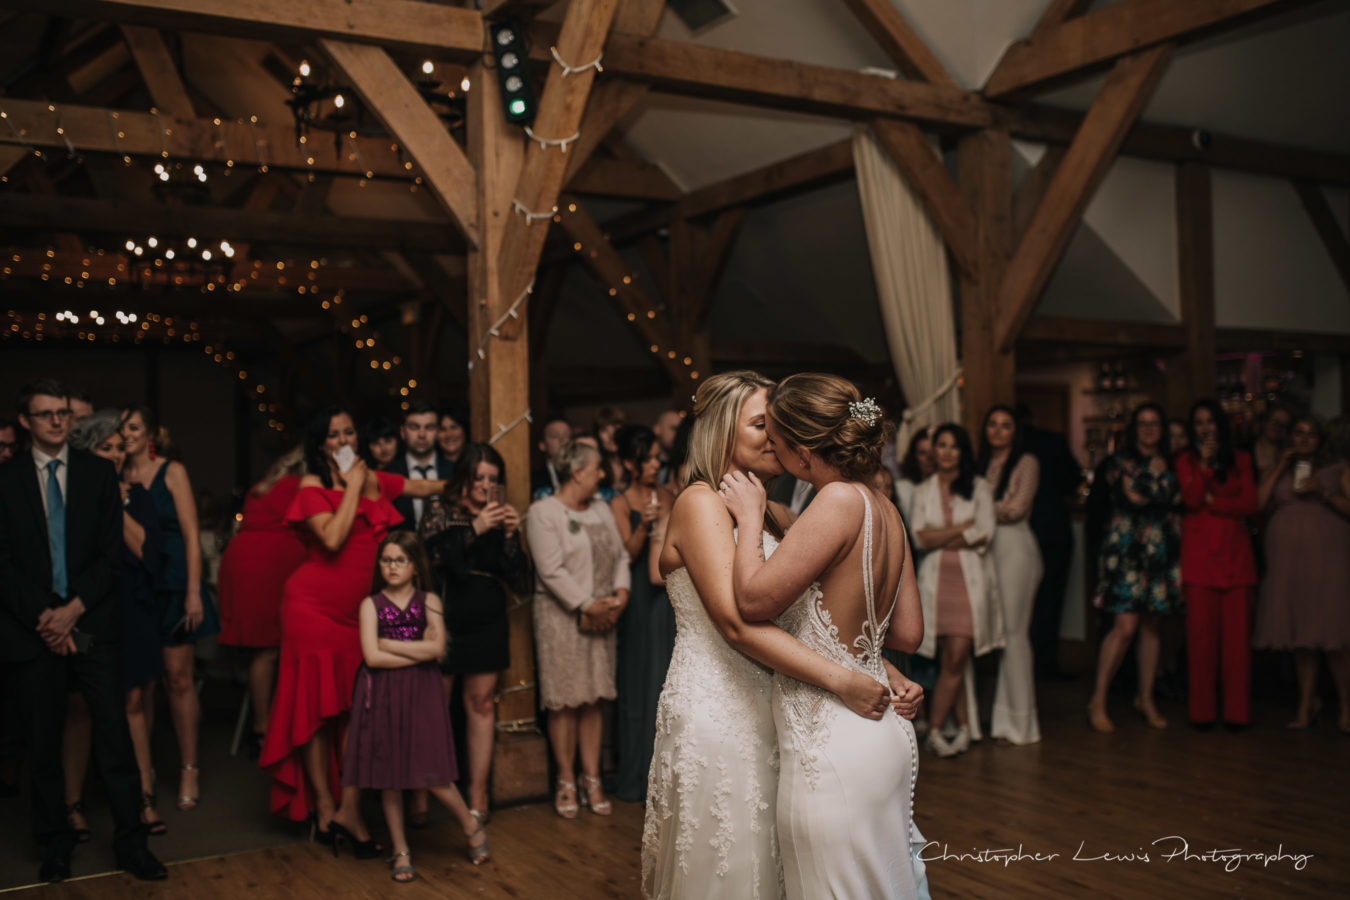 Sandhole-Oak-Barn-Wedding-Christopher-Lewis-Photography- 68